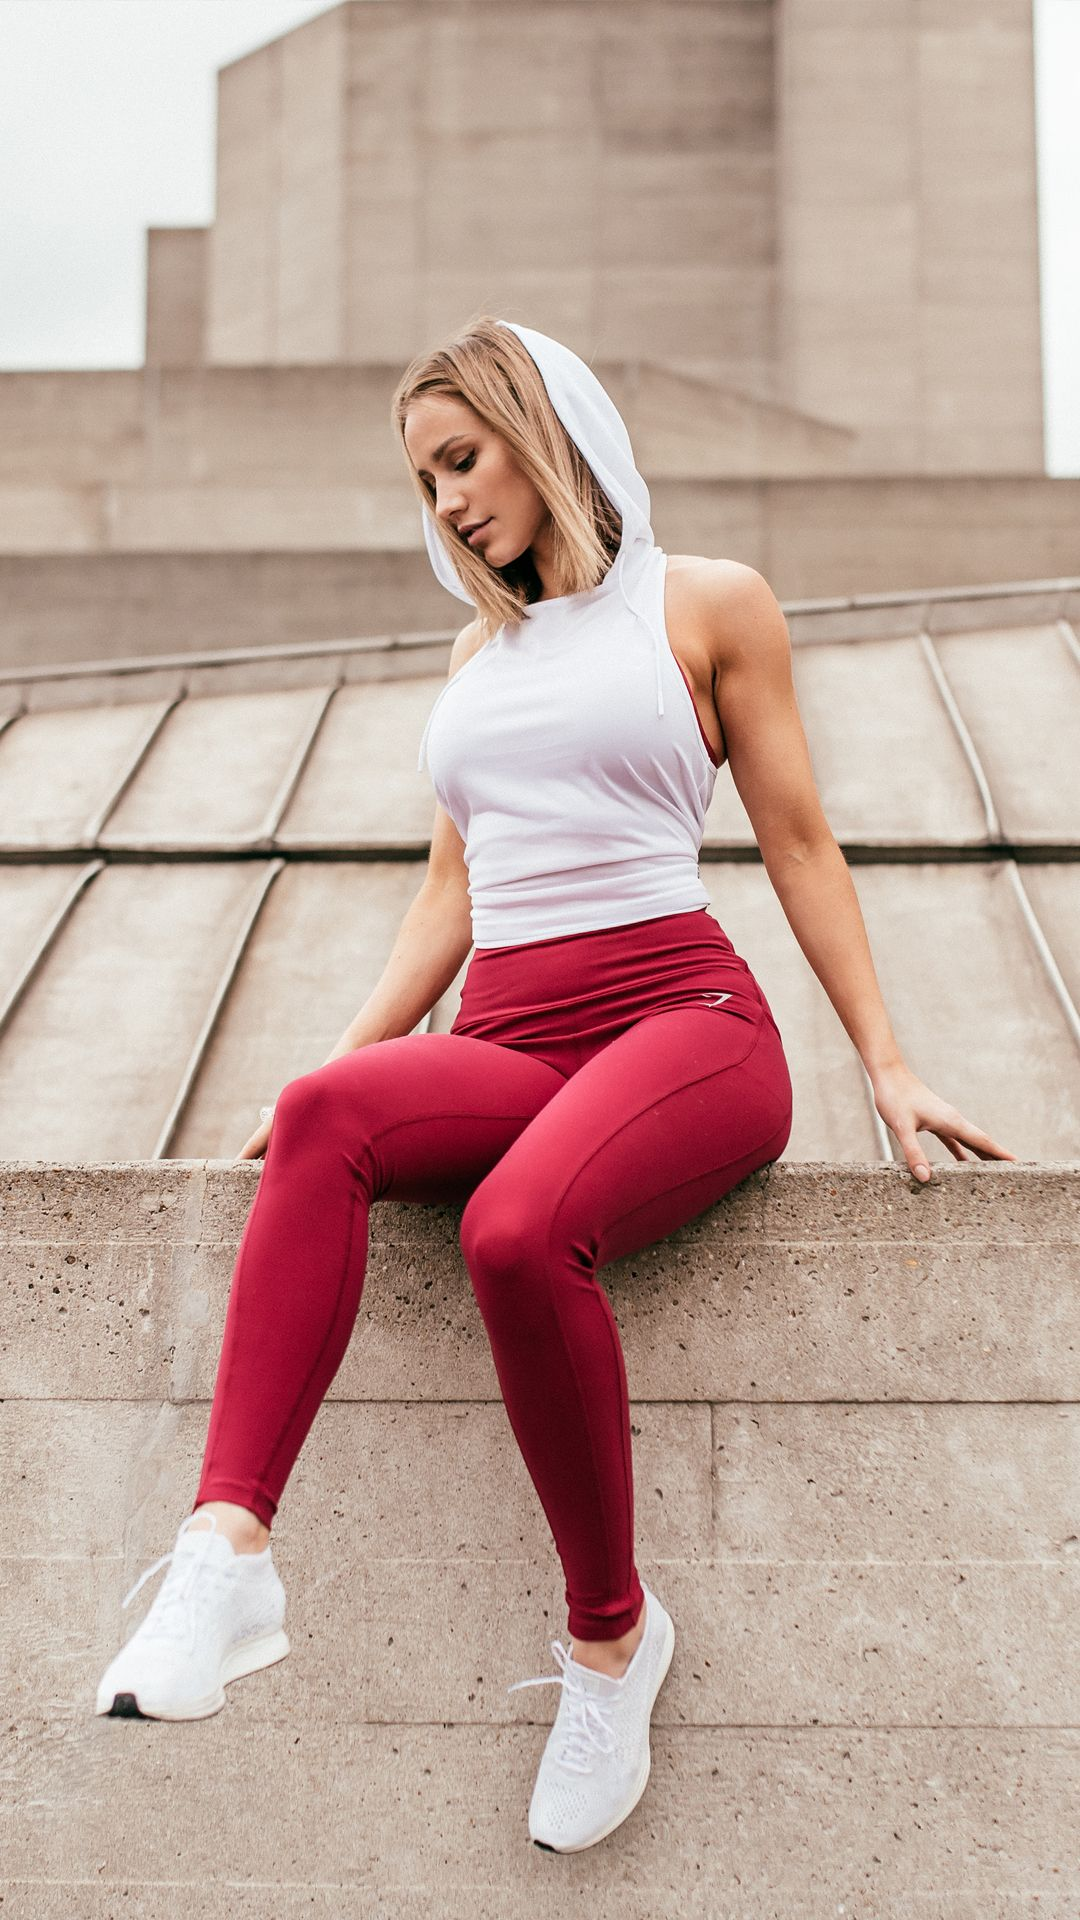 52365c0707a06f Essential gym wear. Gymshark Athlete, Robin Gallant styling the Hooded Vest  in White and Aspire Leggings in Beet.